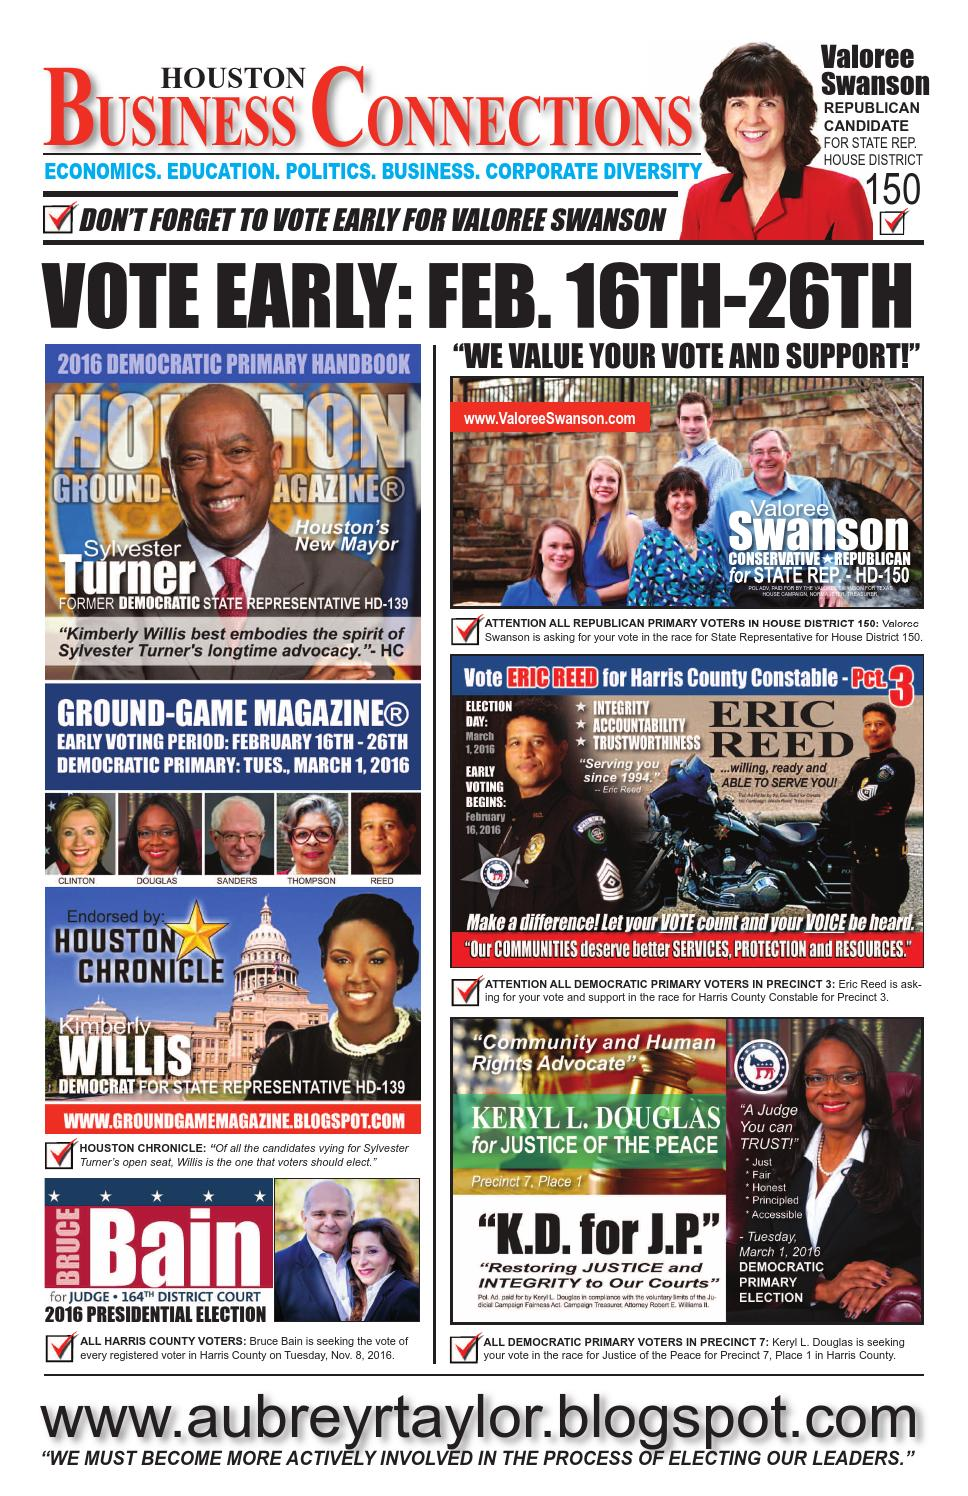 District judge 174th judicial district - February 2016 Early Voting Edition Of Houston Business Connections Newspaper By Aubrey R Taylor Communications Issuu